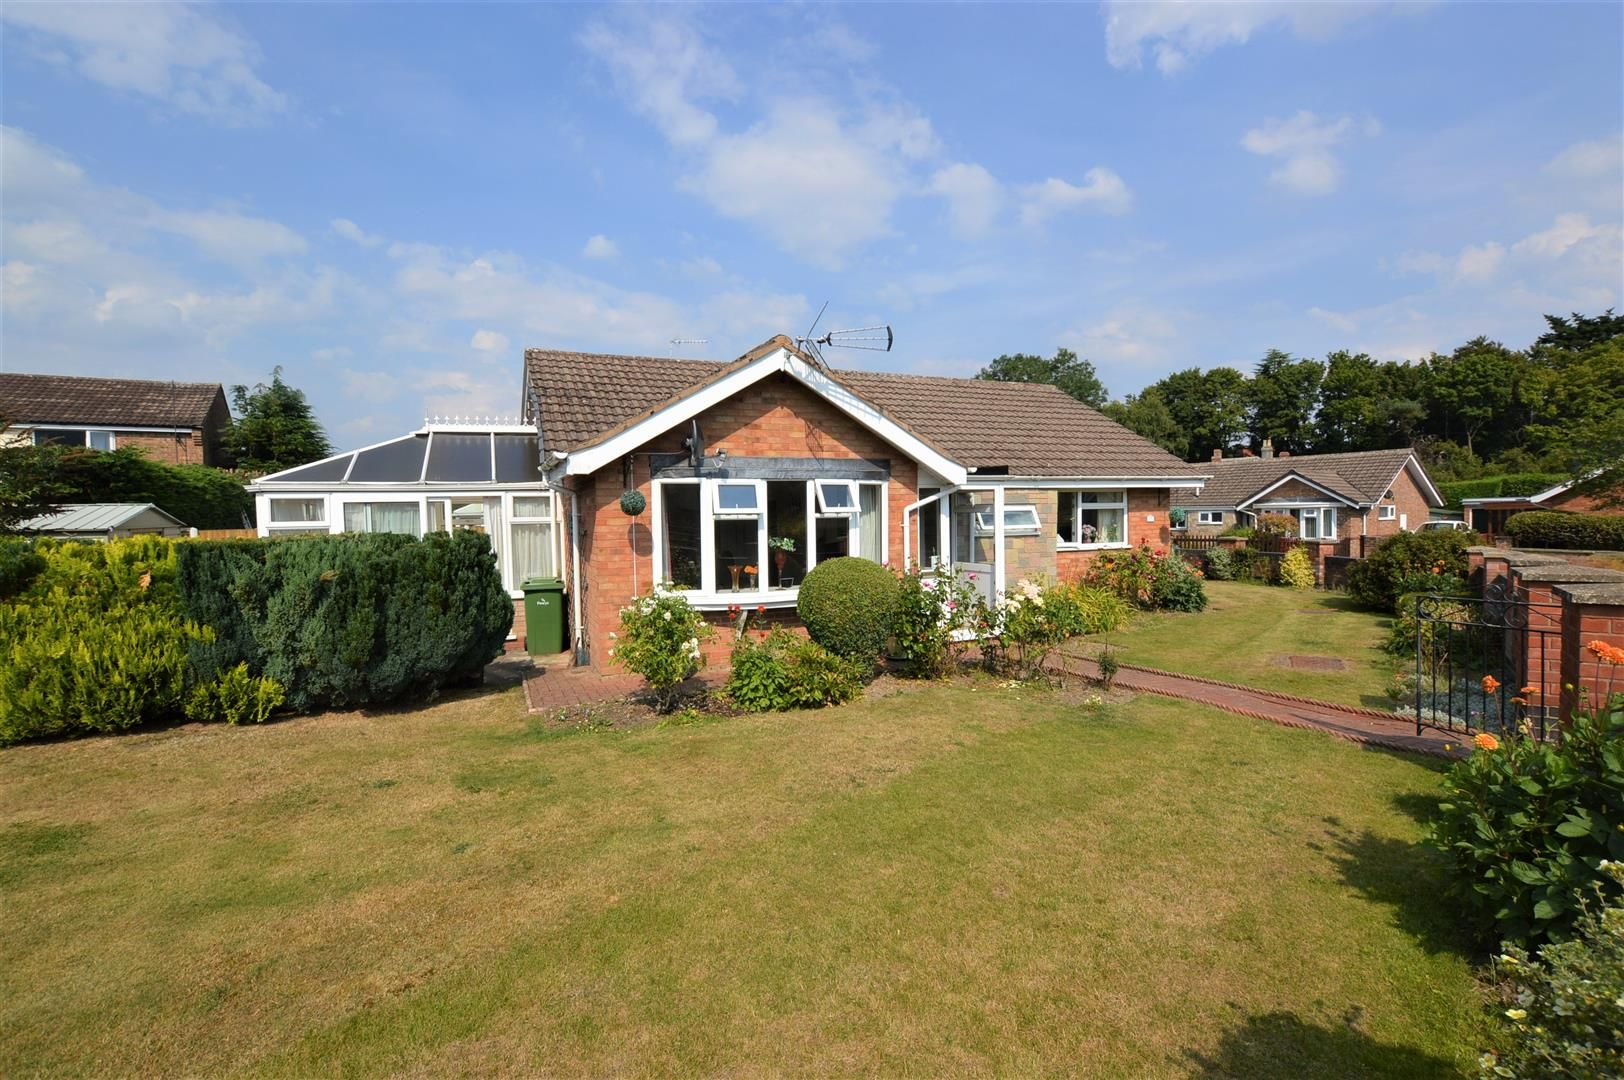 3 bed house for sale in Presteigne - Property Image 1